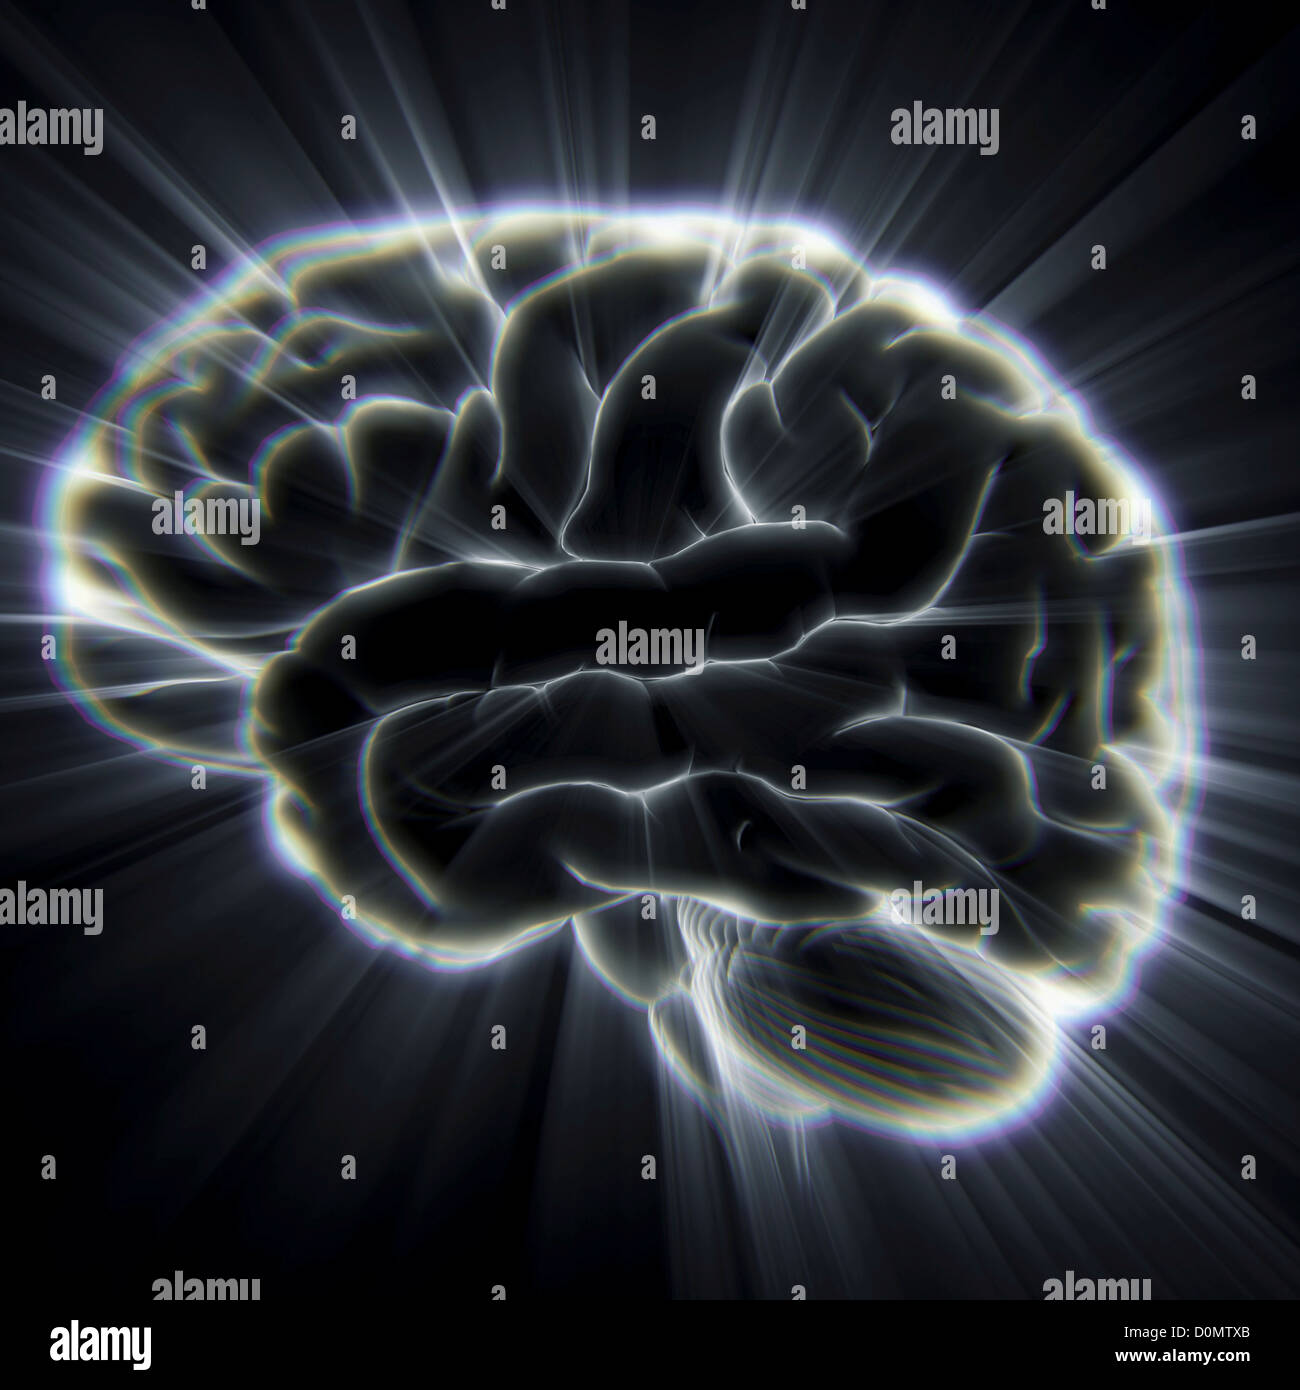 Diagram of the human brain emanating light beams. - Stock Image